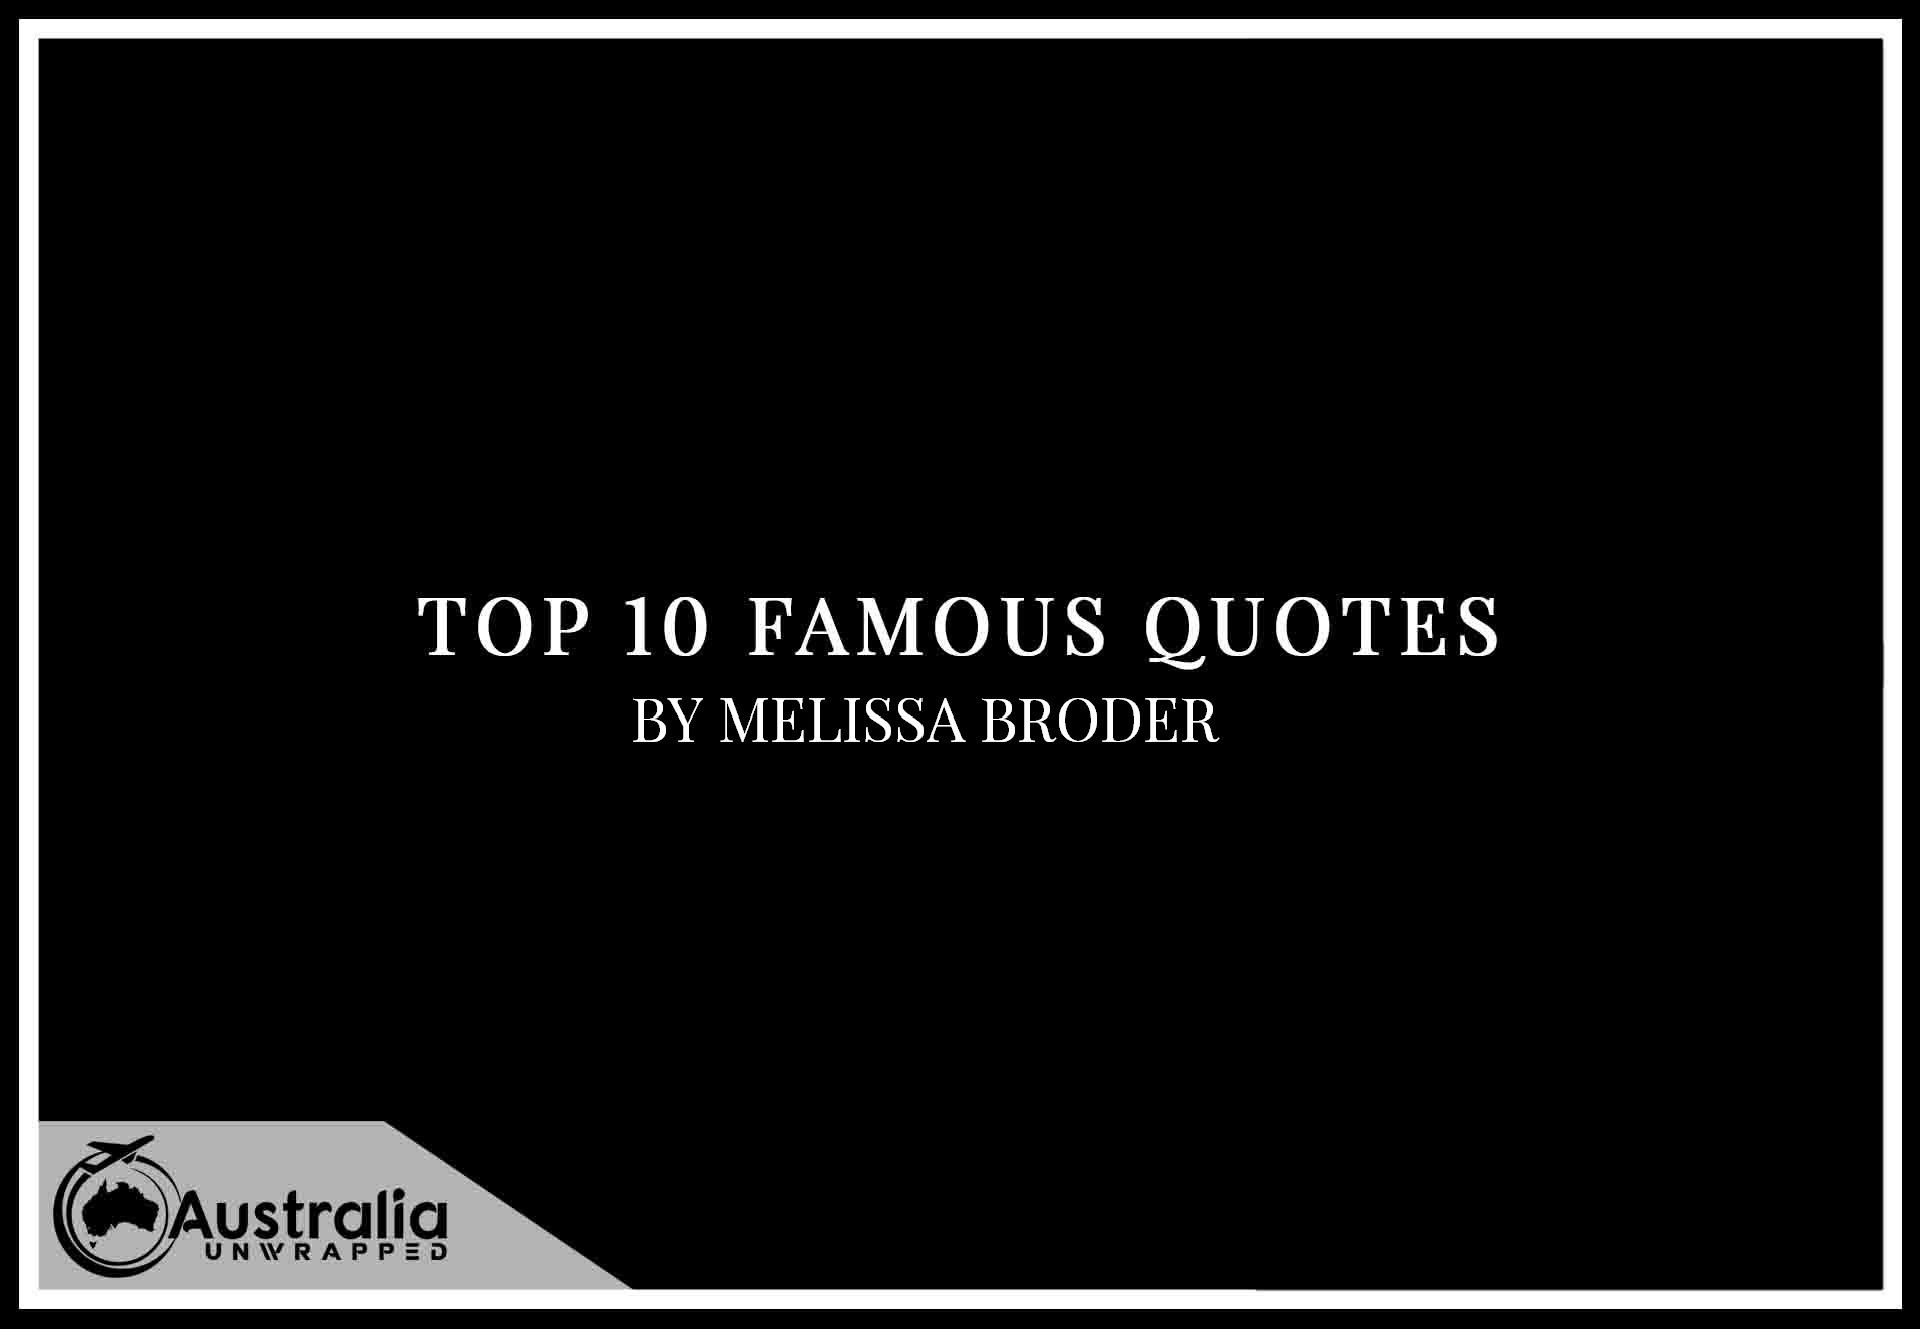 Top 10 Famous Quotes by Author Melissa Broder